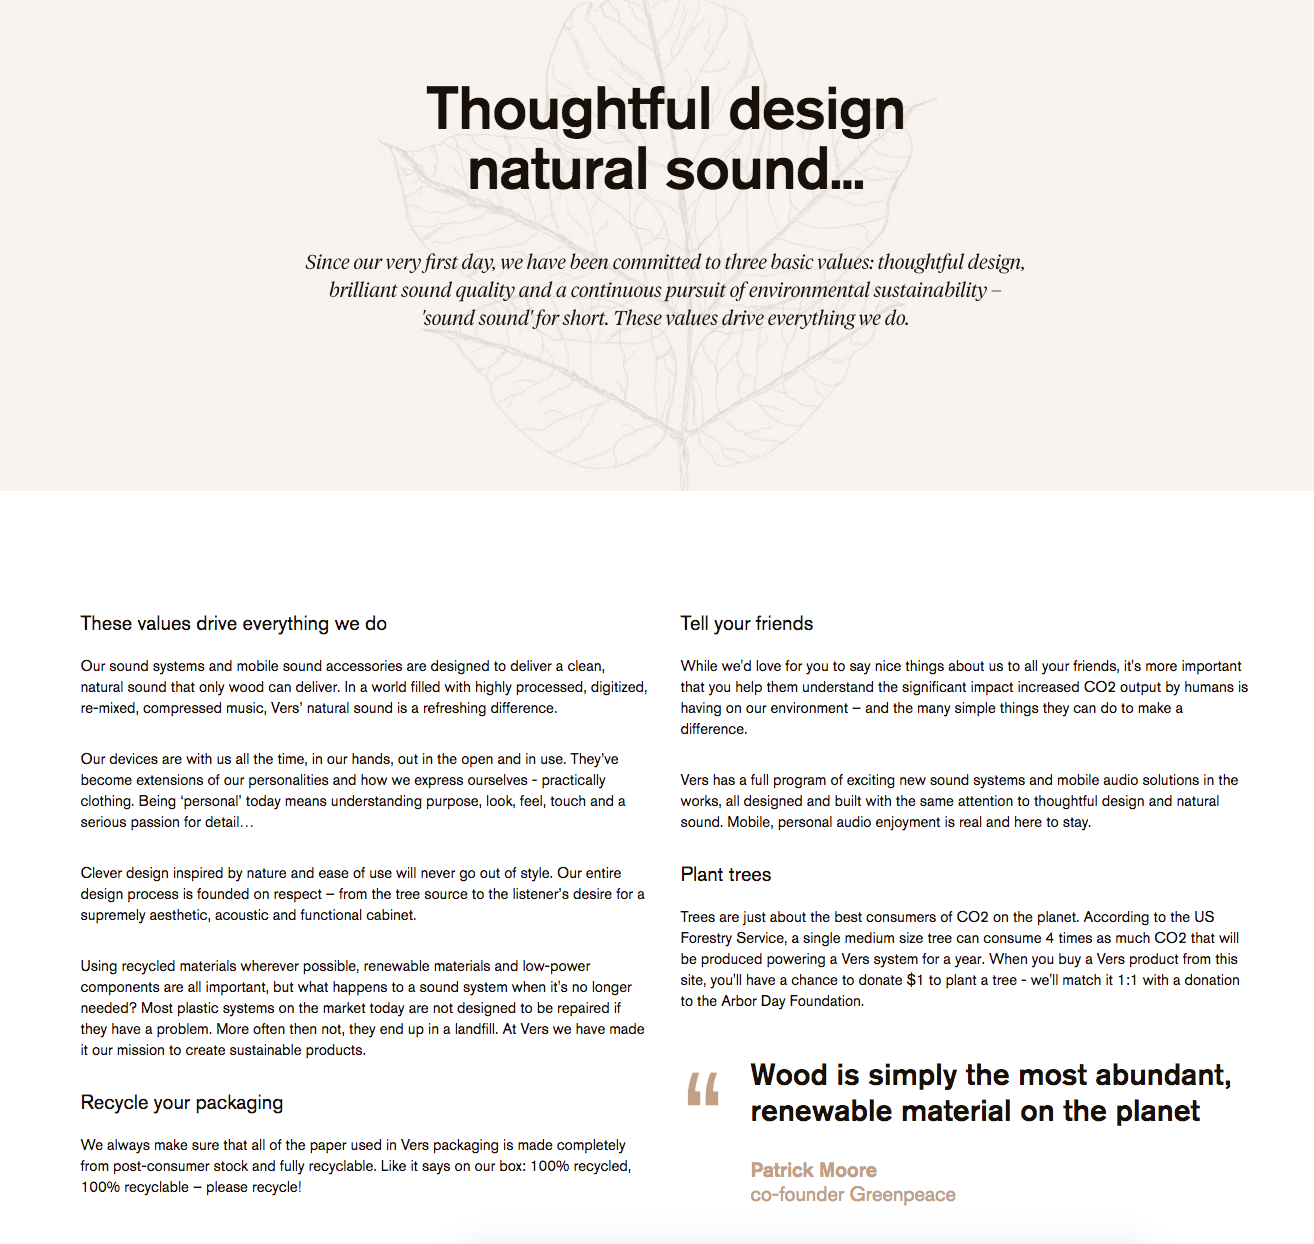 The design of the page even lends itself to the message of sustainability and environmentally-friendly design and company practices, which is a lovely touch.